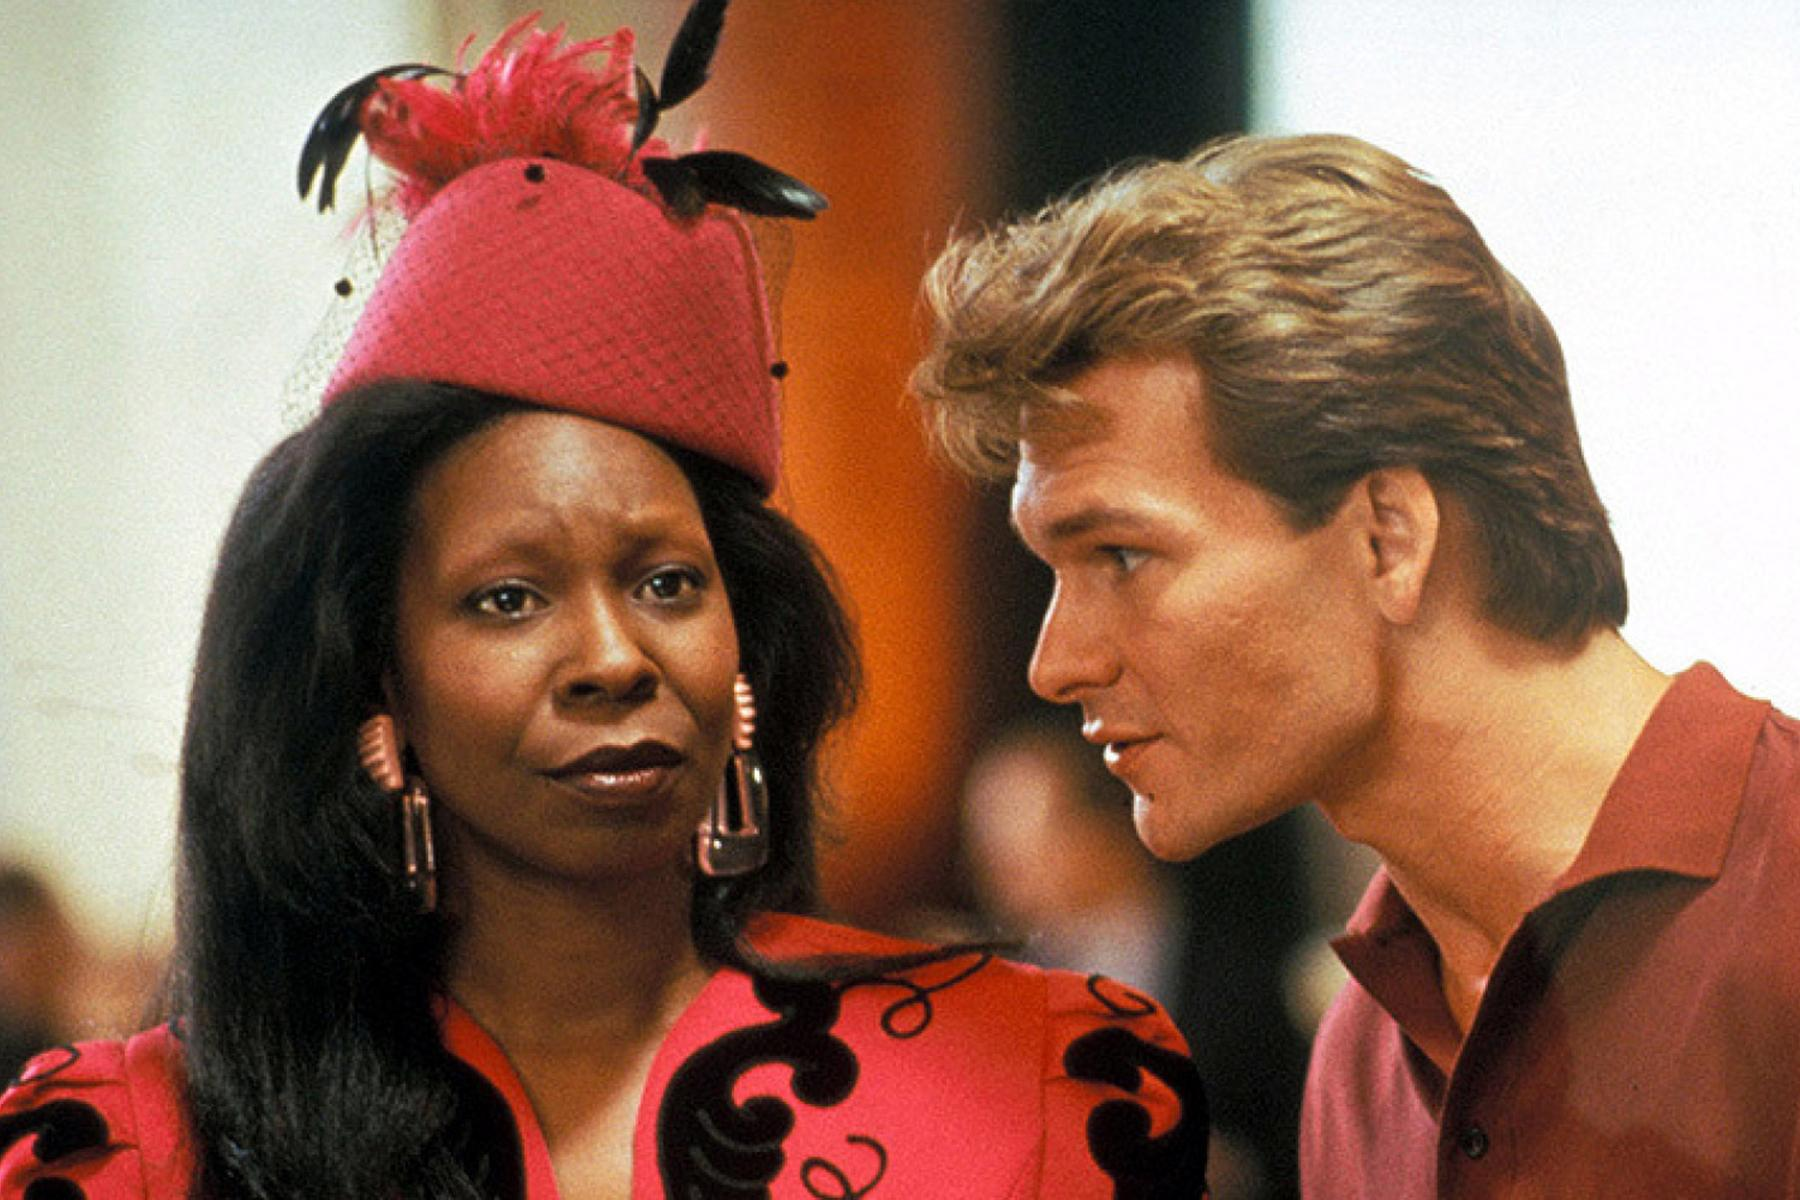 paramountpictures ghost patrickswayze whoopigoldberg 021317 1800x1200 1800x1200 1 20 Things You Might Not Have Realised About Ghost